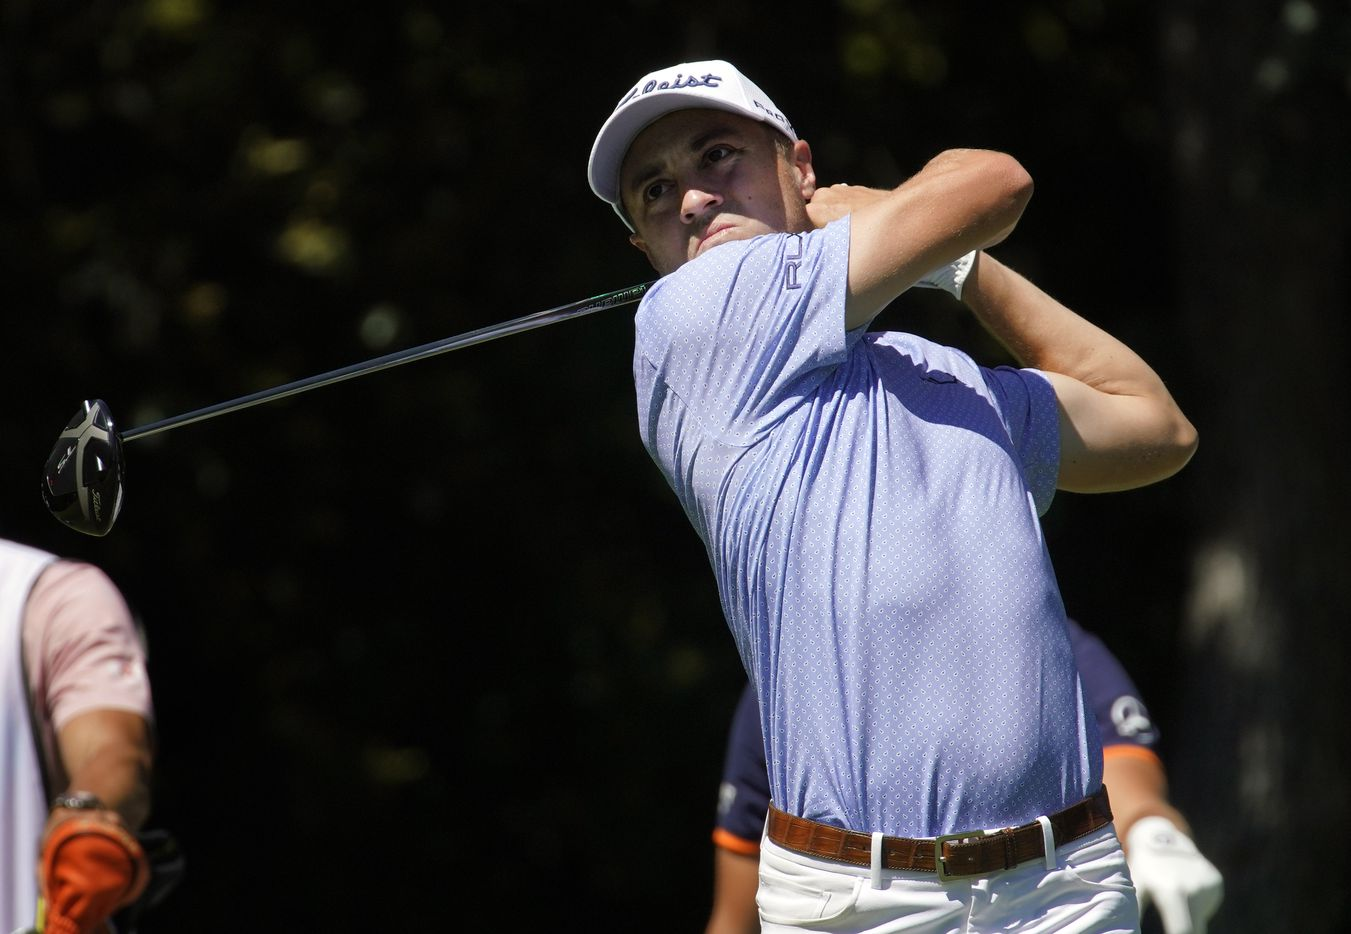 PGA Tour golfer Justin Thomas watches his drive off the No. 12 tee box during the opening round of the Charles Schwab Challenge at the Colonial Country Club in Fort Worth, Thursday, June 11, 2020.  The Challenge is the first tour event since the COVID-19 pandemic began. (Tom Fox/The Dallas Morning News)